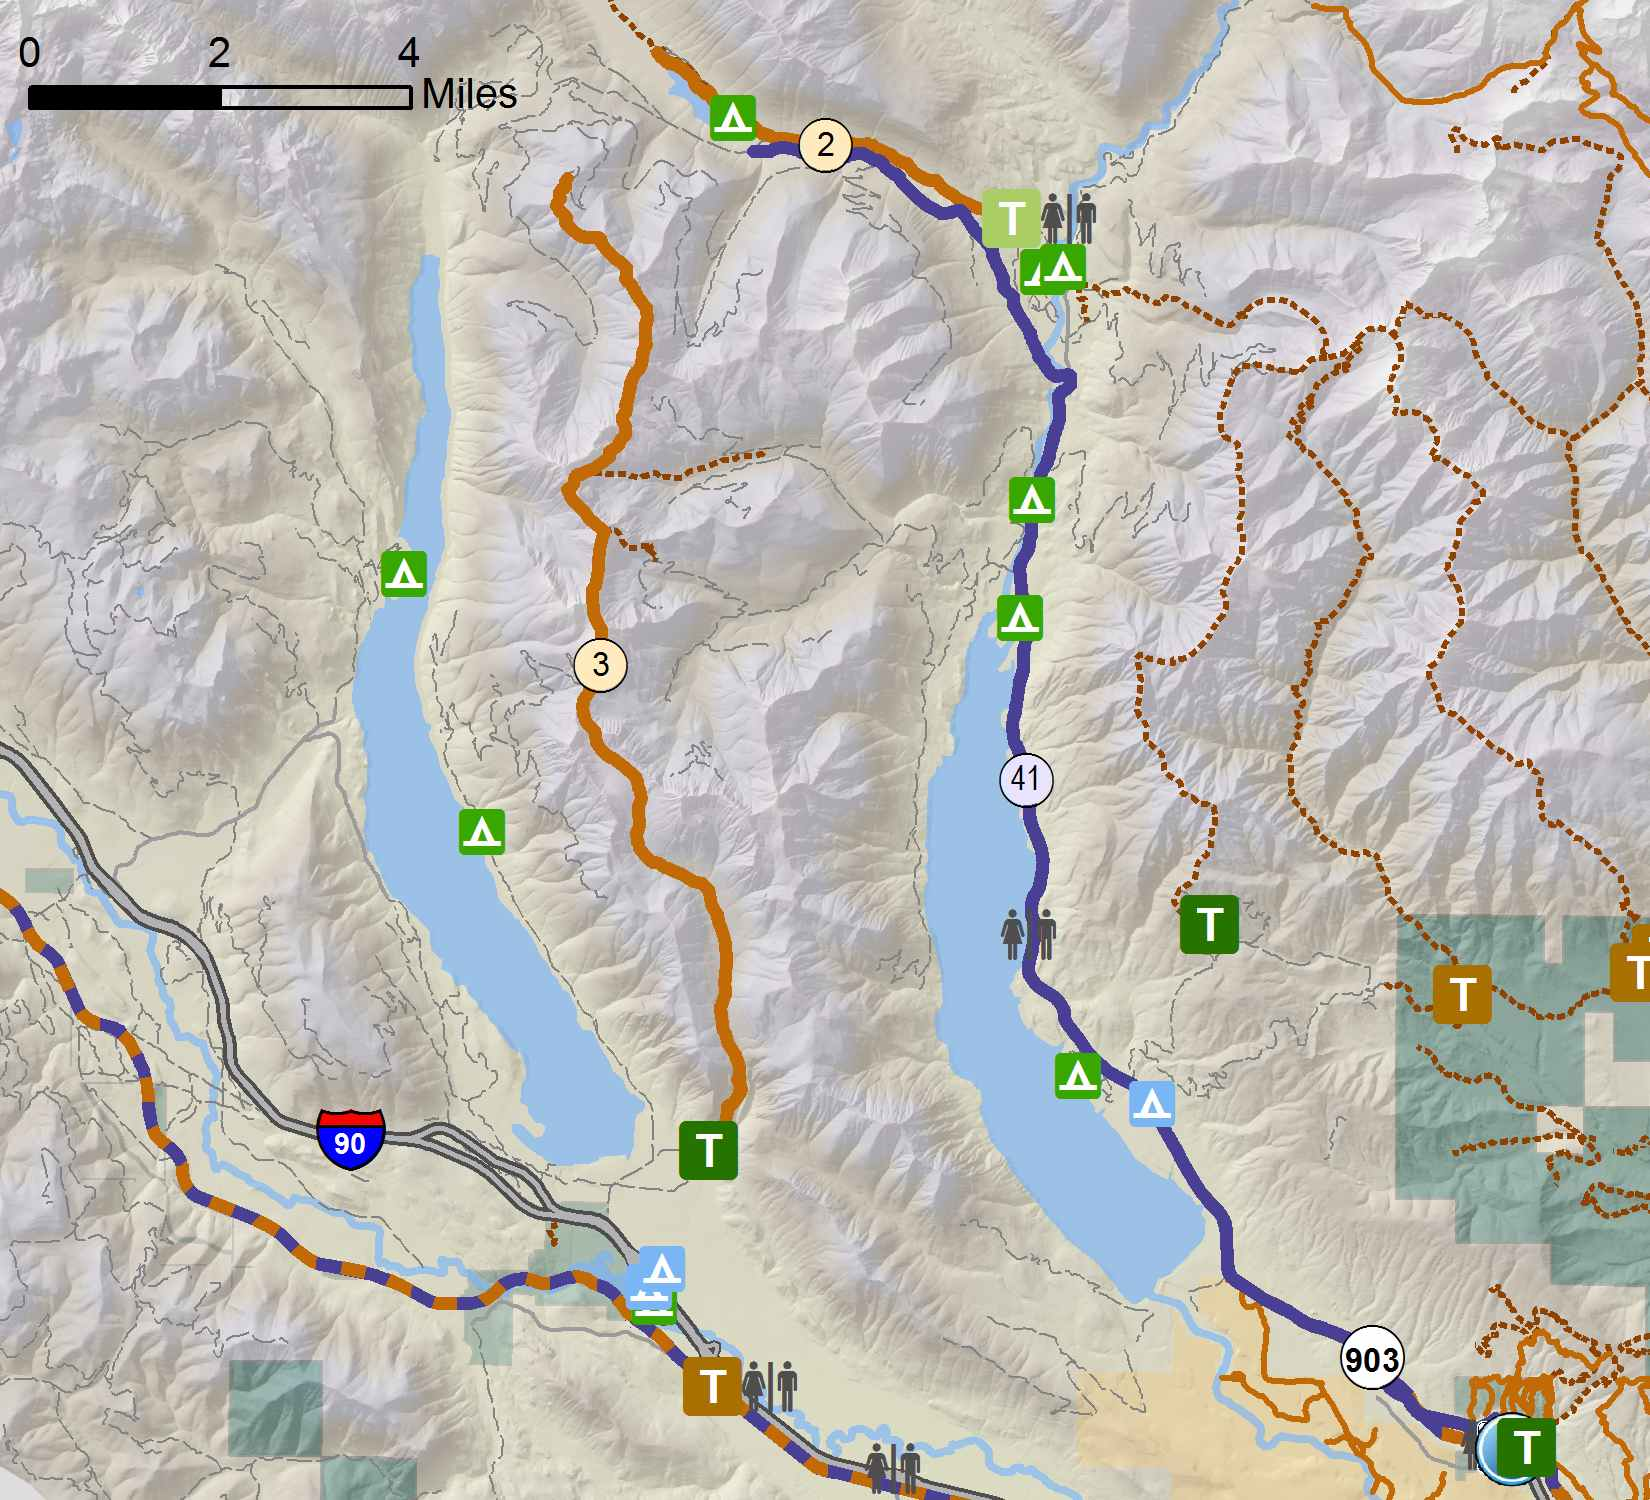 Bike Map Inset - Kachees/Cle Elum